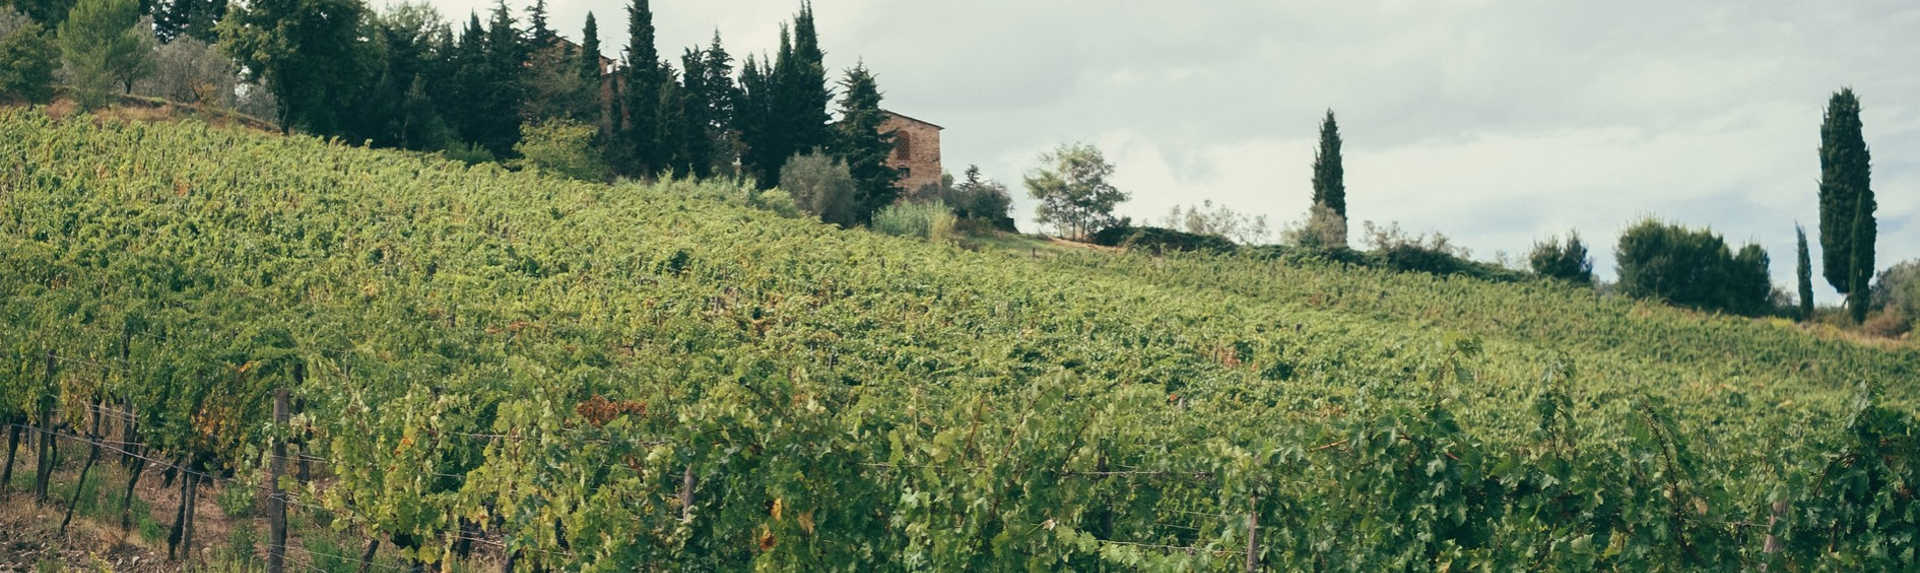 What is the best way to get around Tuscany?